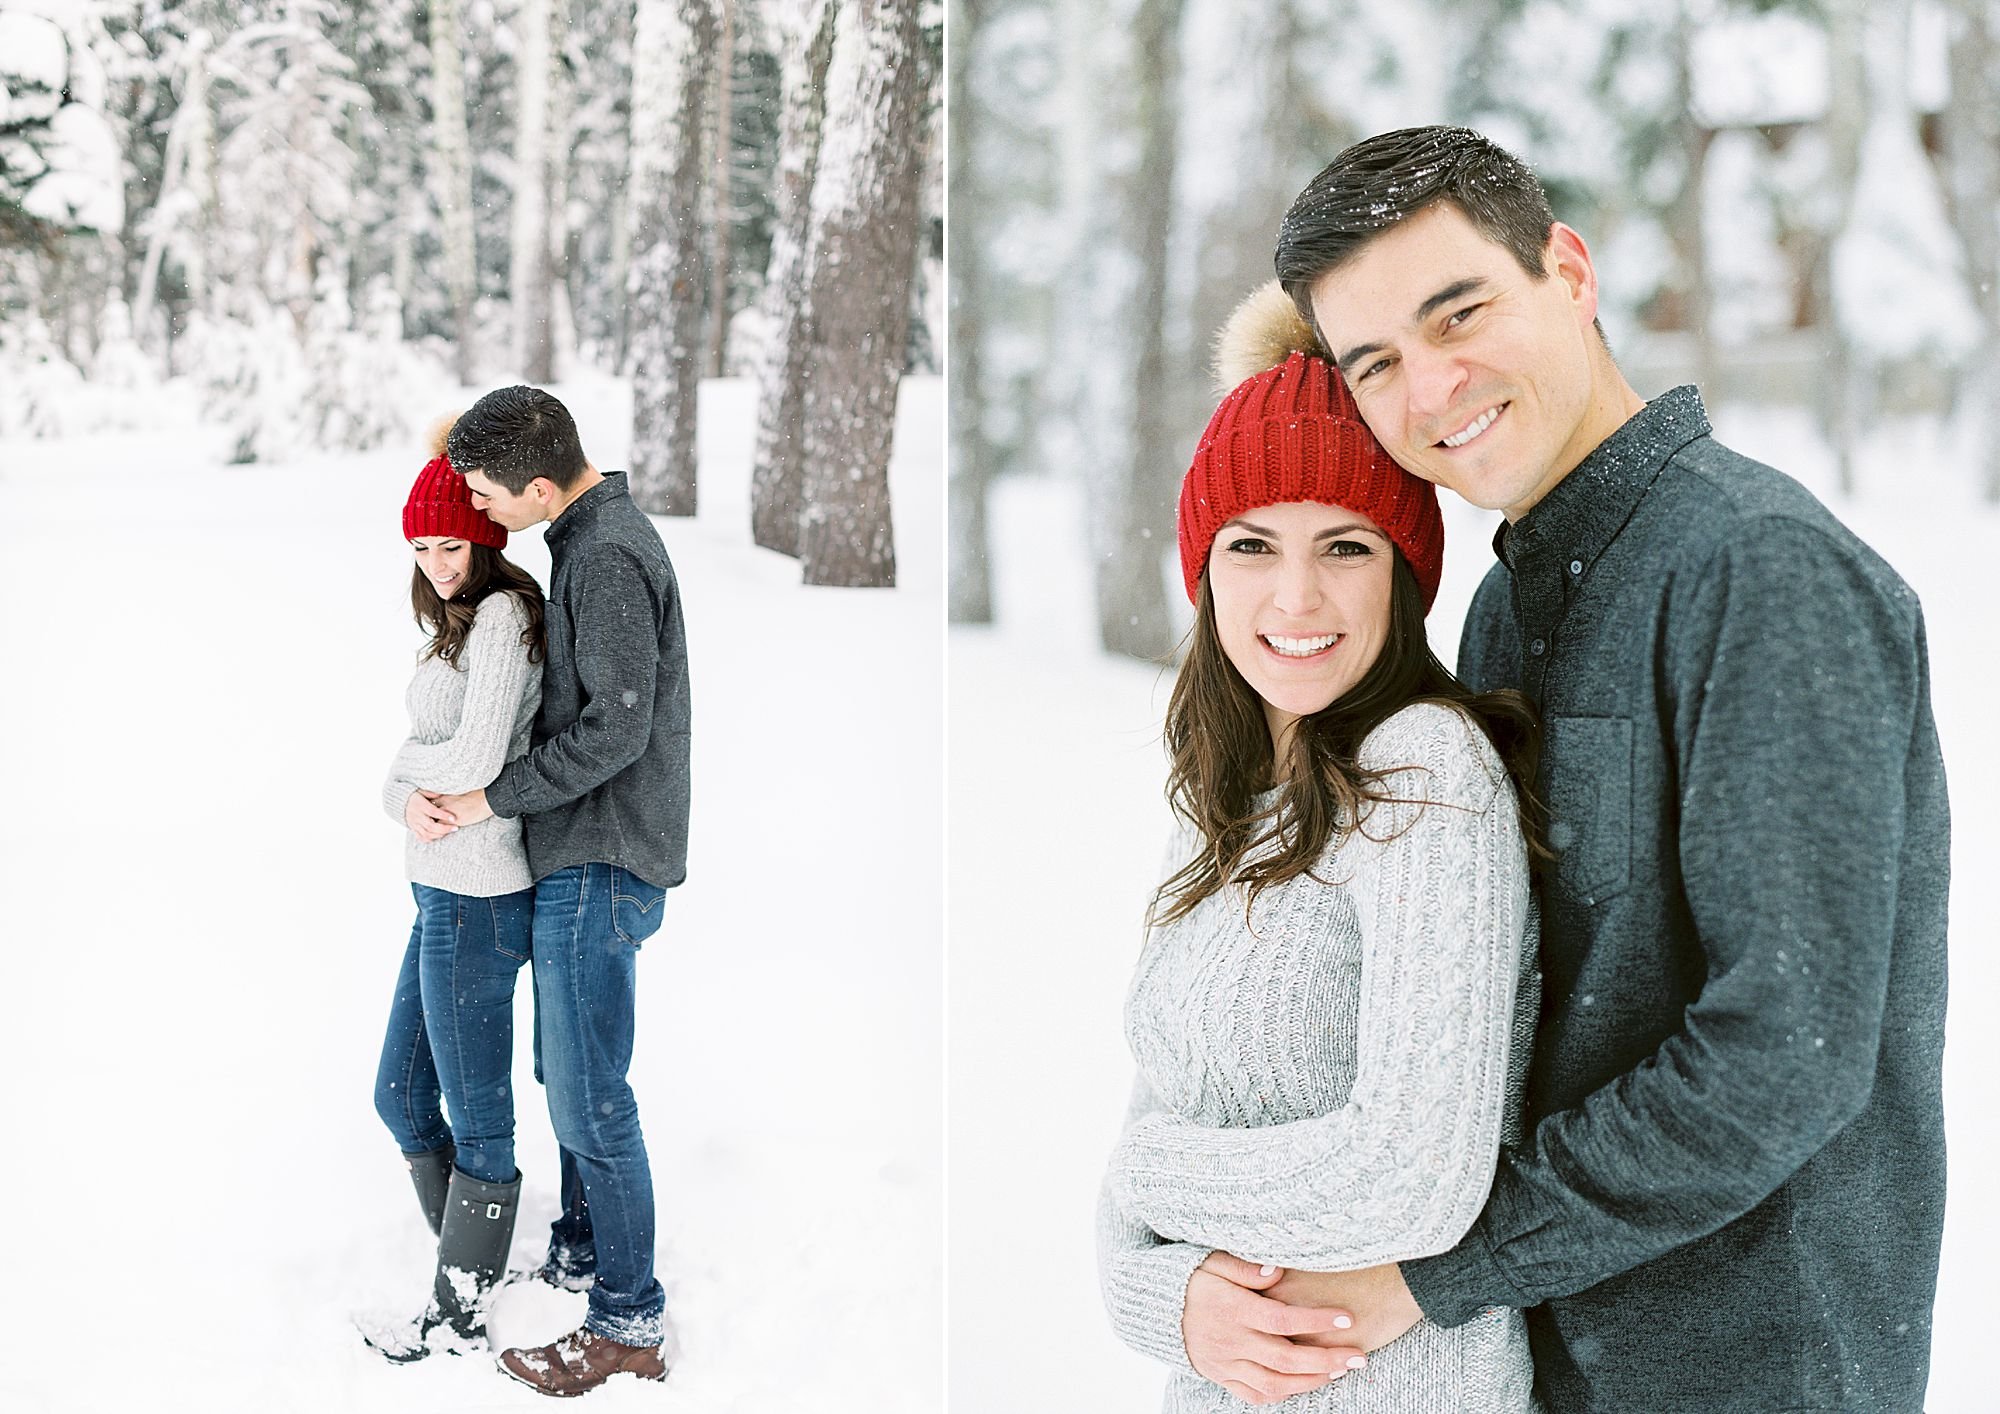 Snowy Tahoe Engagement Session - Alex and Kevin - Ashley Baumgartner - Tahoe Engagement Session - Tahoe Wedding Photographer - Tahoe Engagement Photos - Snow Engagement Photos_0009.jpg